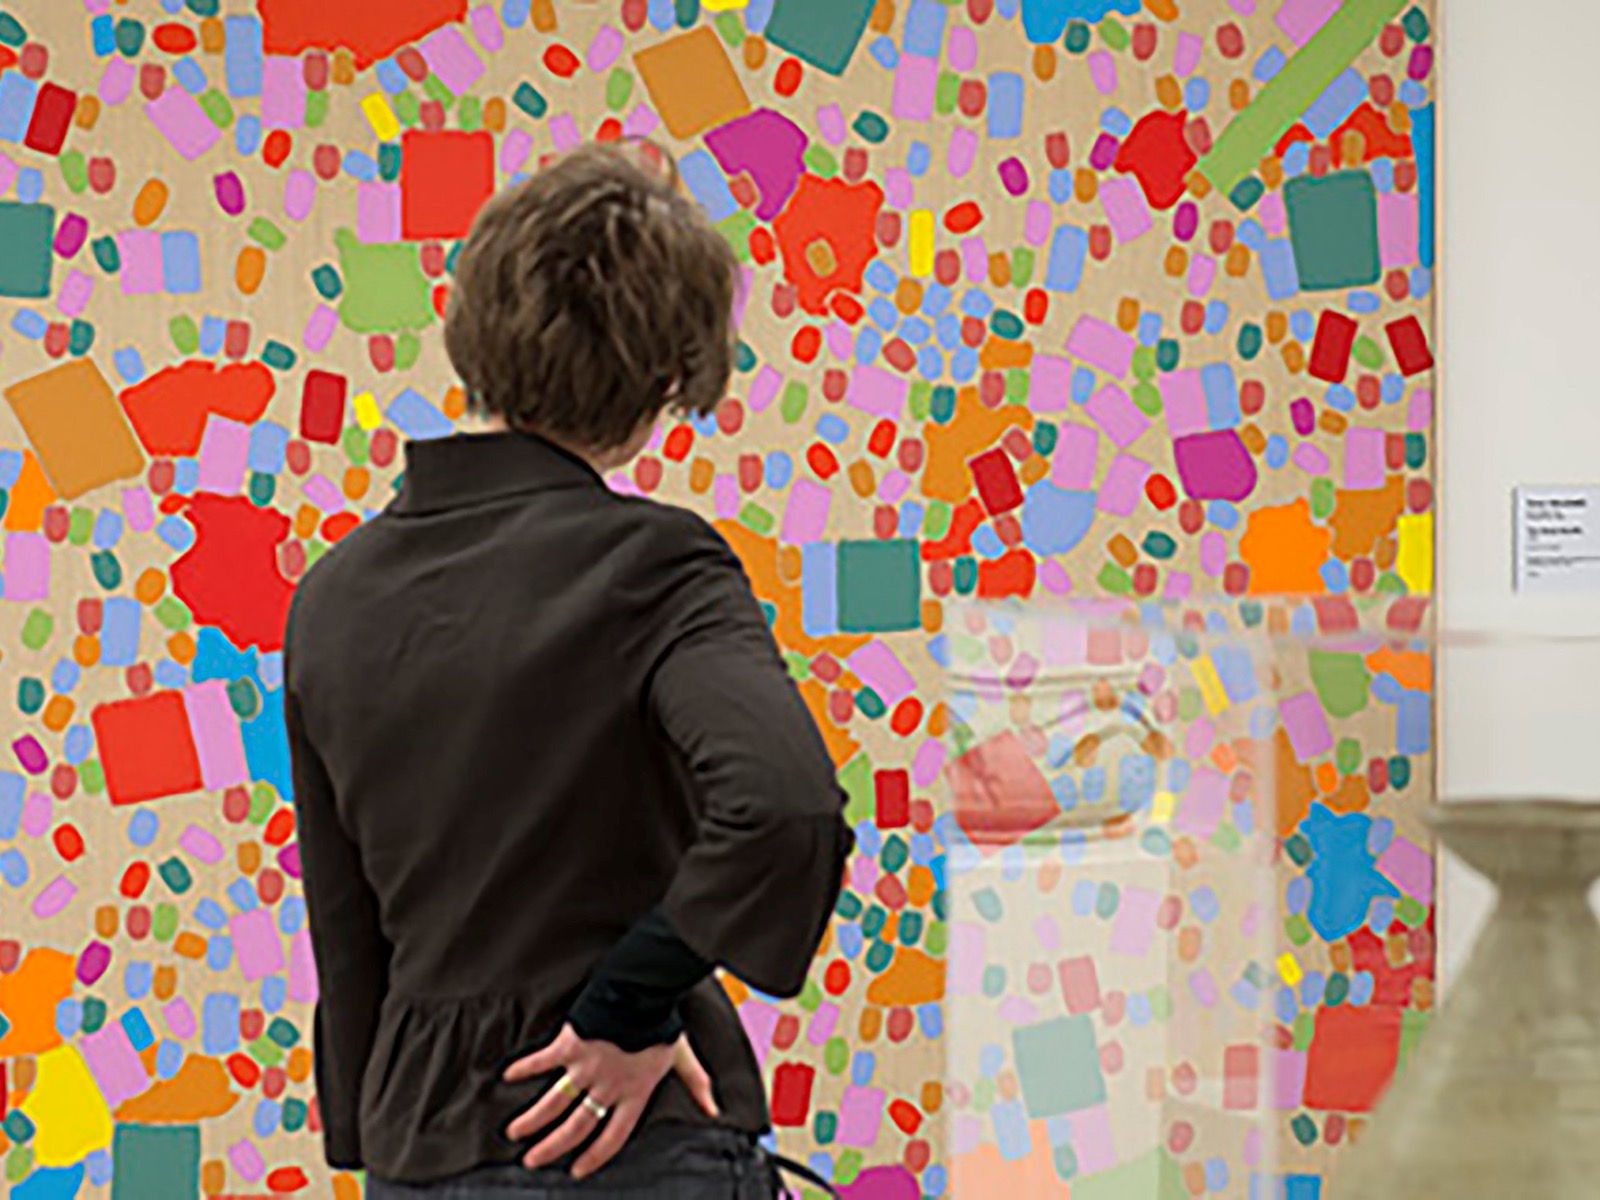 Visitor at Gippsland Art Gallery standing in front of a multicoloured artwork